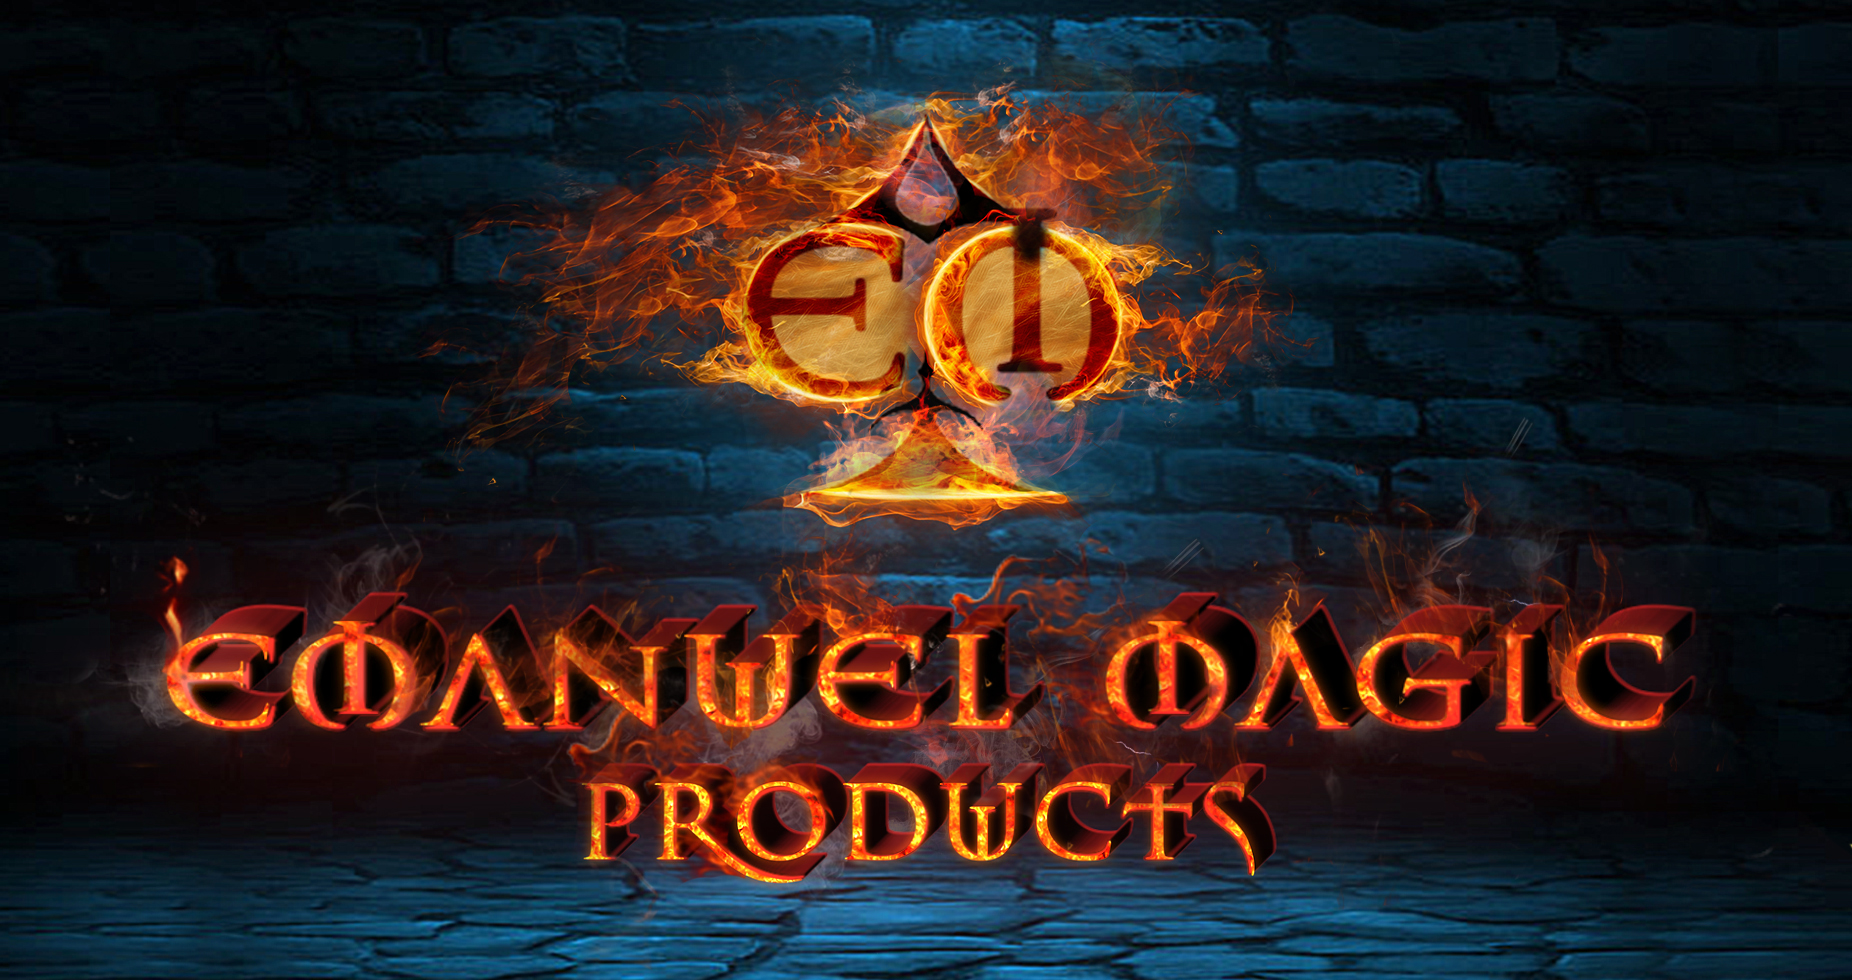 Emanuel Magic - PRODUCTOS